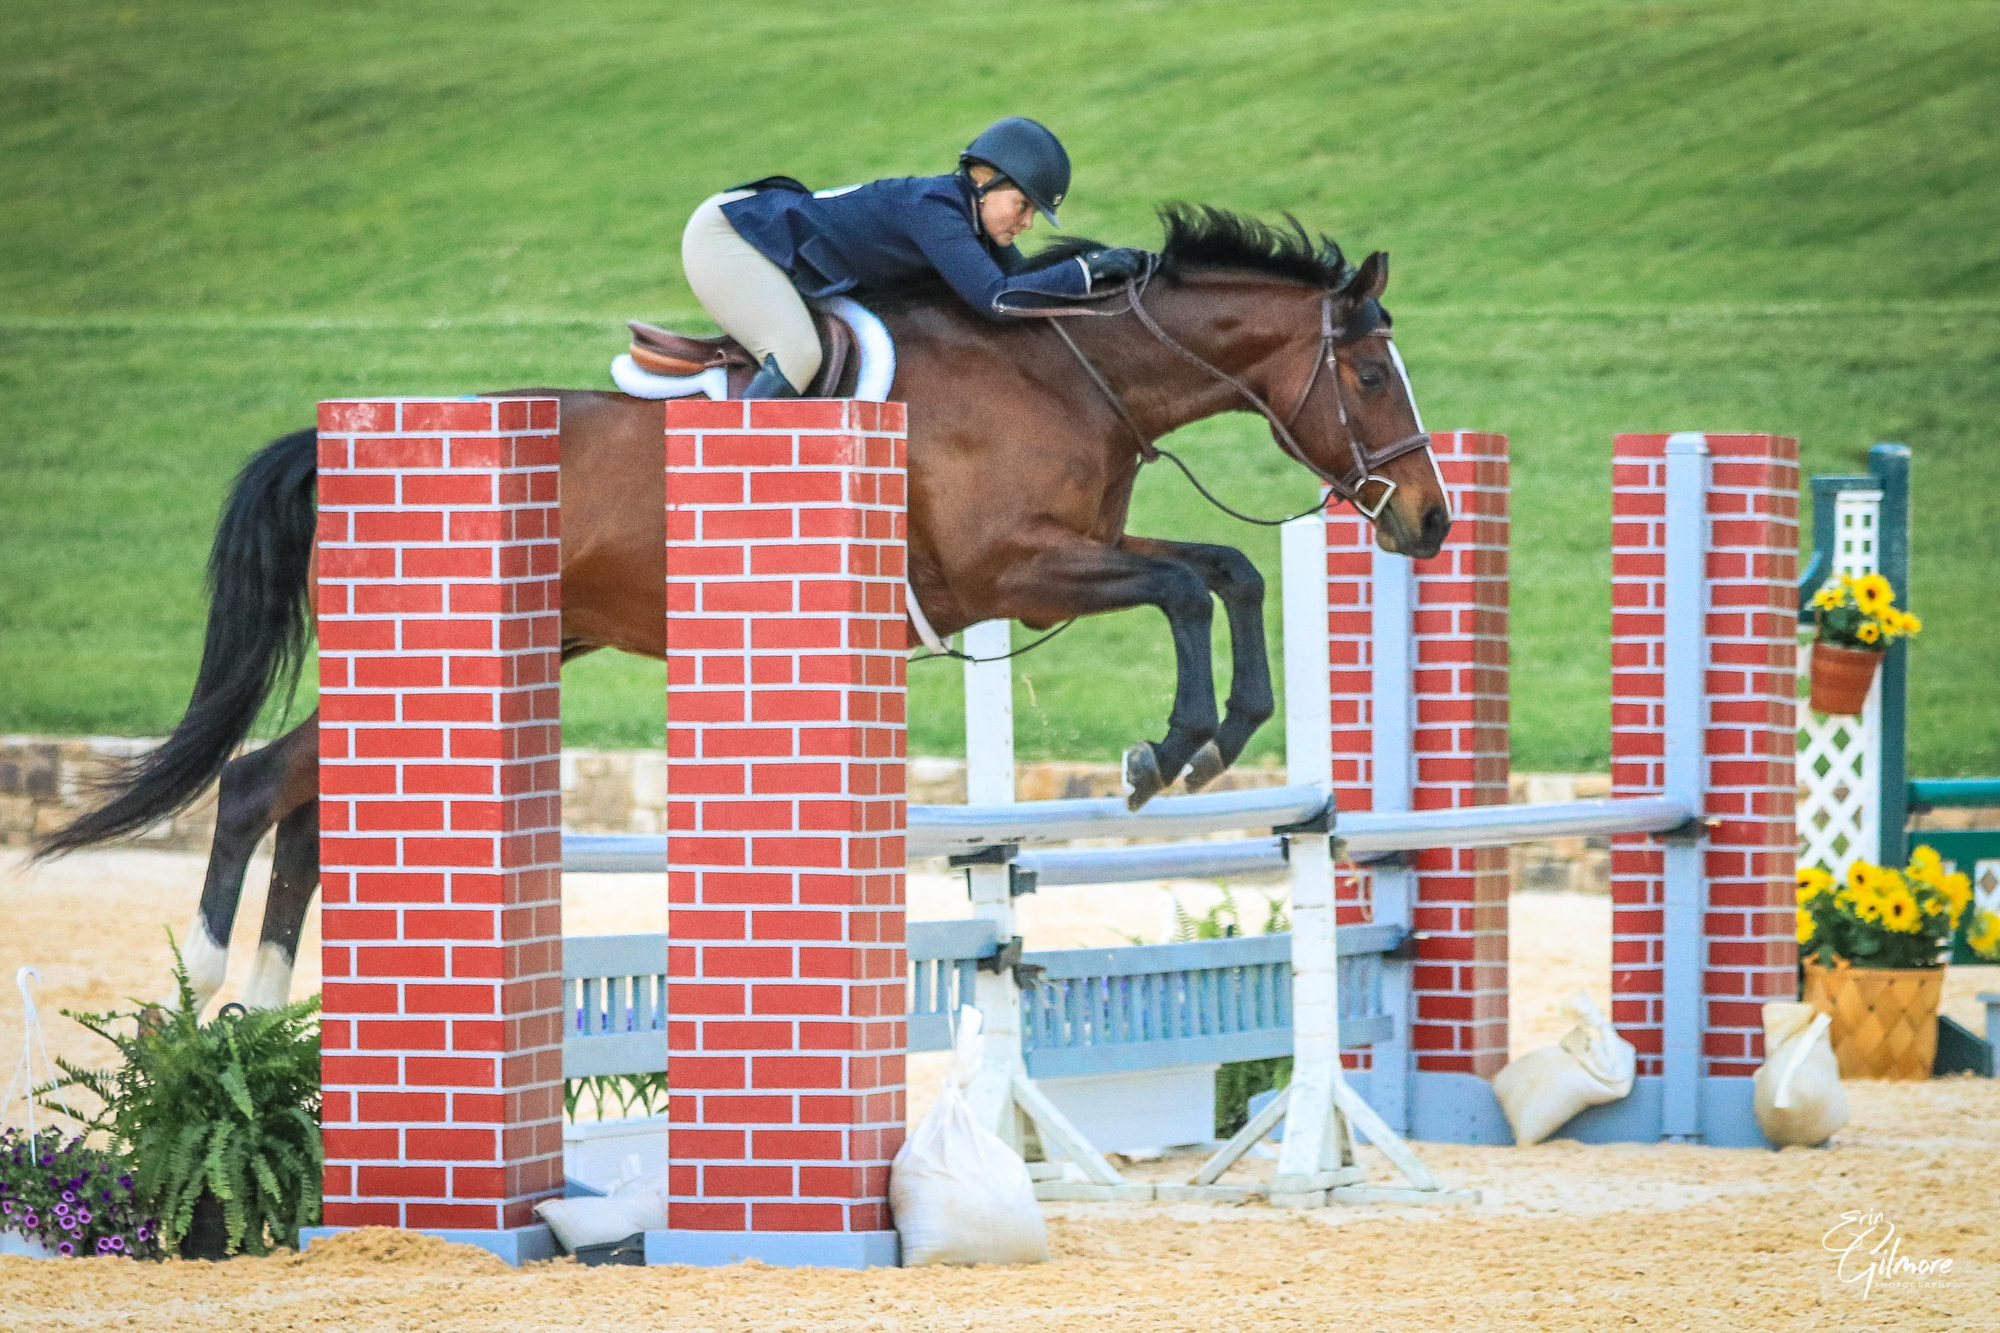 This $100 donation will go towards the floral arrangements and jump decorations at Morven Park's Summer Show Series and Horse Trials.